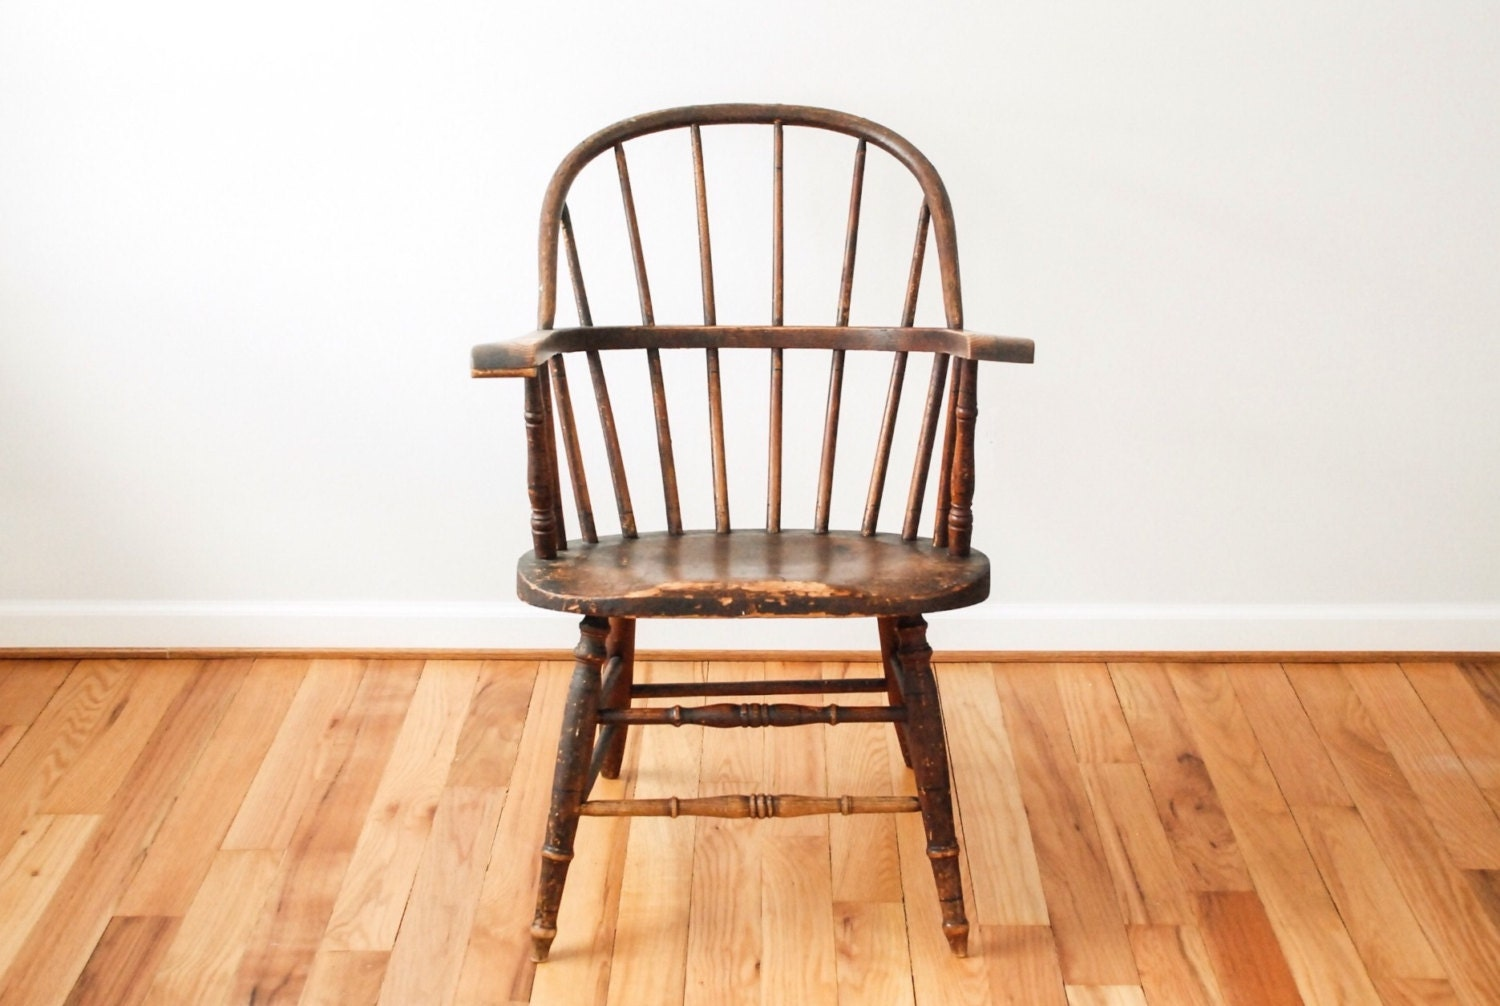 antique Windsor, antique wood chair, spindle back chair, gorgeous antique  American Sack-back Windsor Arm Chair, 1800s, antique seating - Antique Windsor, Antique Wood Chair, Spindle Back Chair, Gorgeous